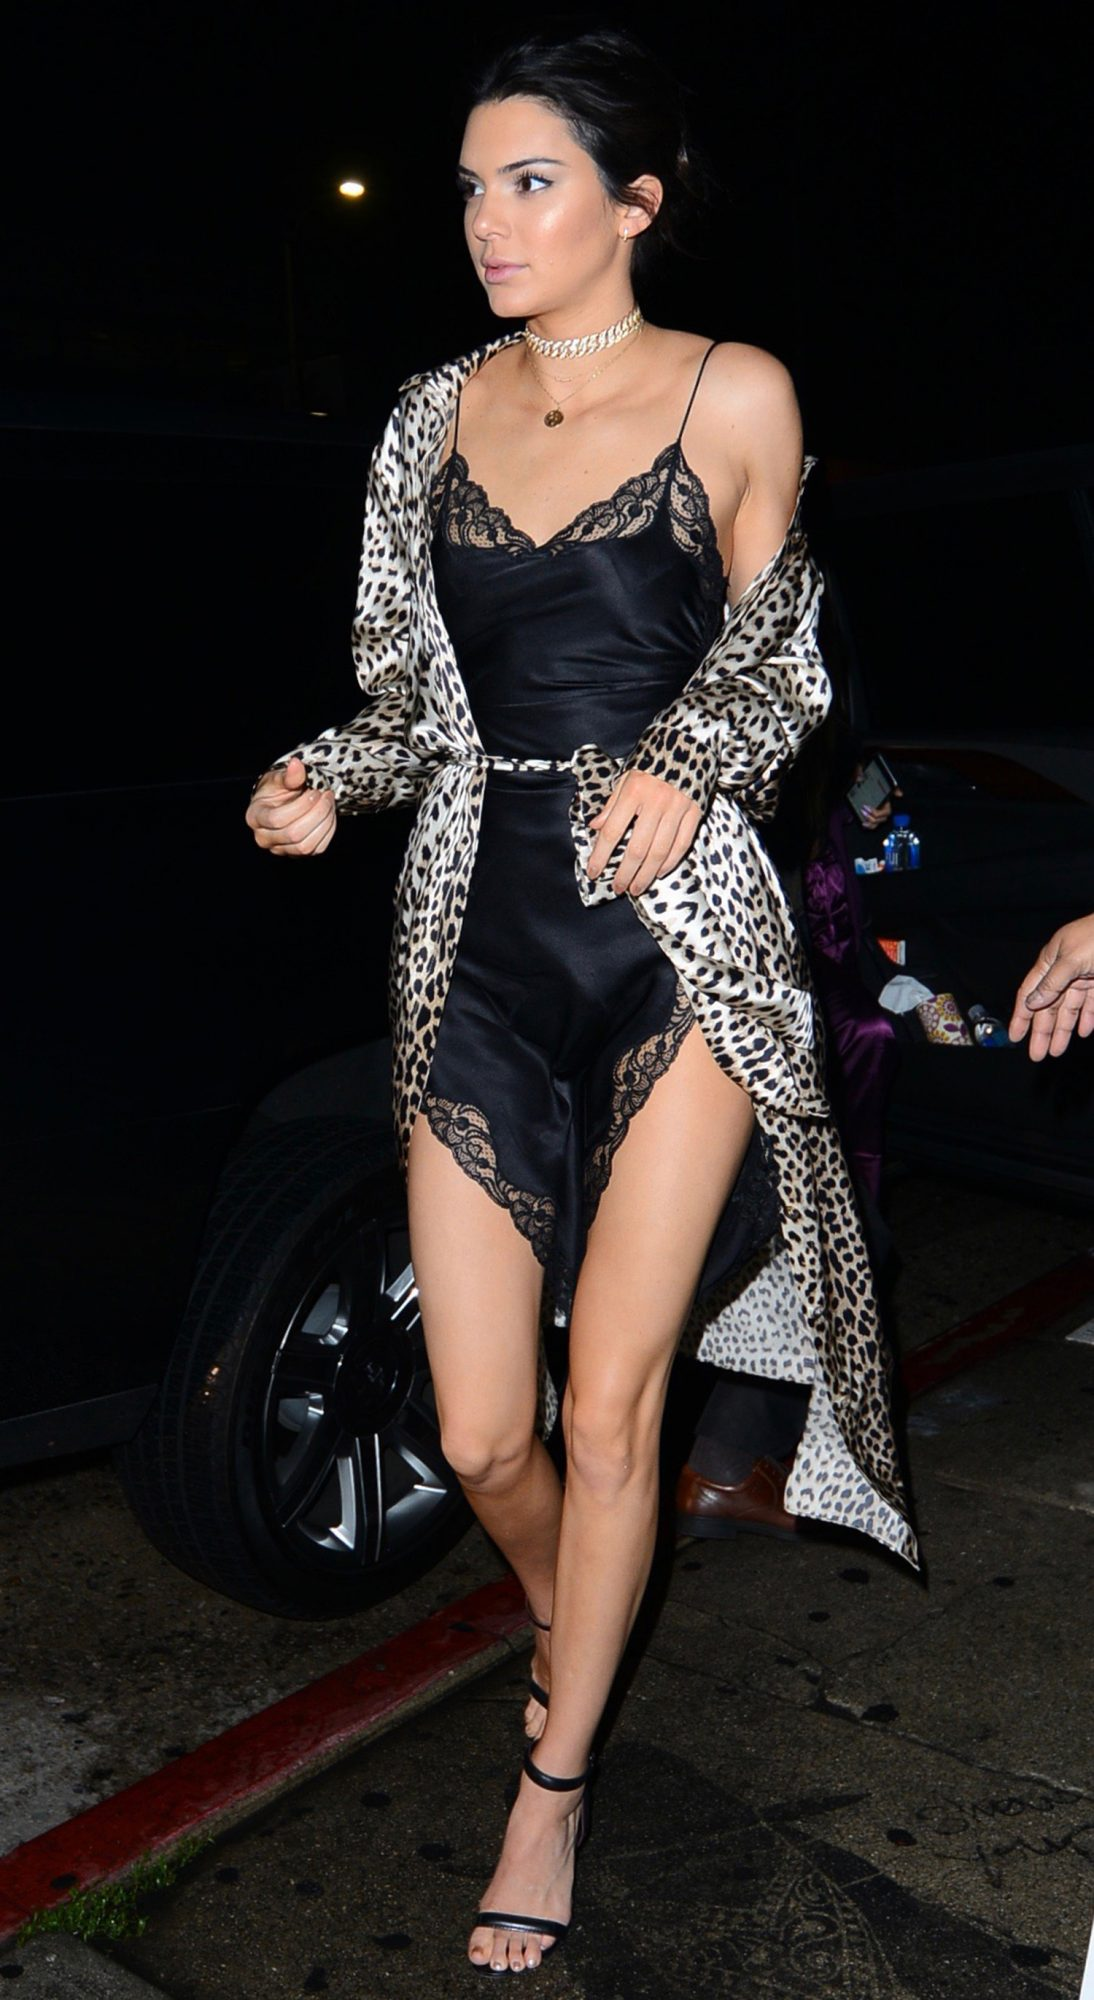 Kendall Jenner shows off her long legs at The Nice Guy